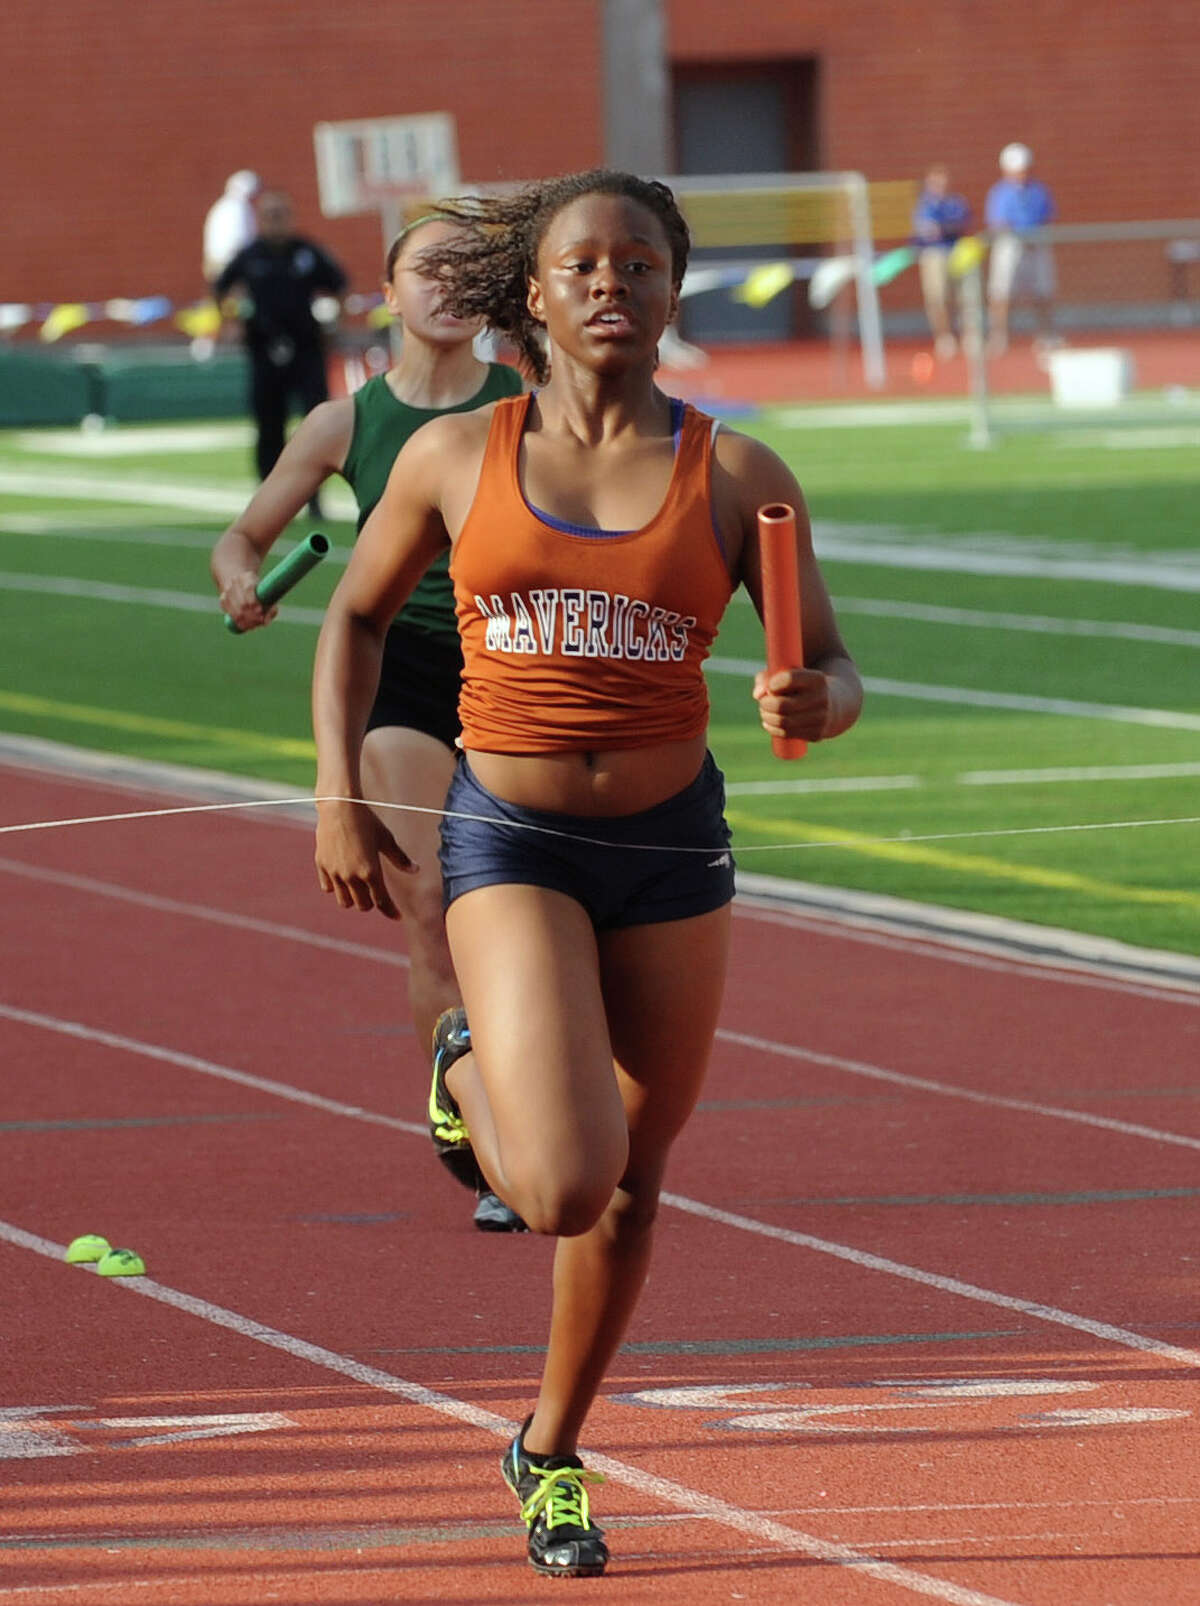 Yasmyn Richards of Madison crosses the finish line as her team wins the girls 4x100 meter relay during the finals of the District 26-5A track championships at Heroes Stadium on Thursday, April 12, 2012. Billy Calzada / San Antonio Express-News